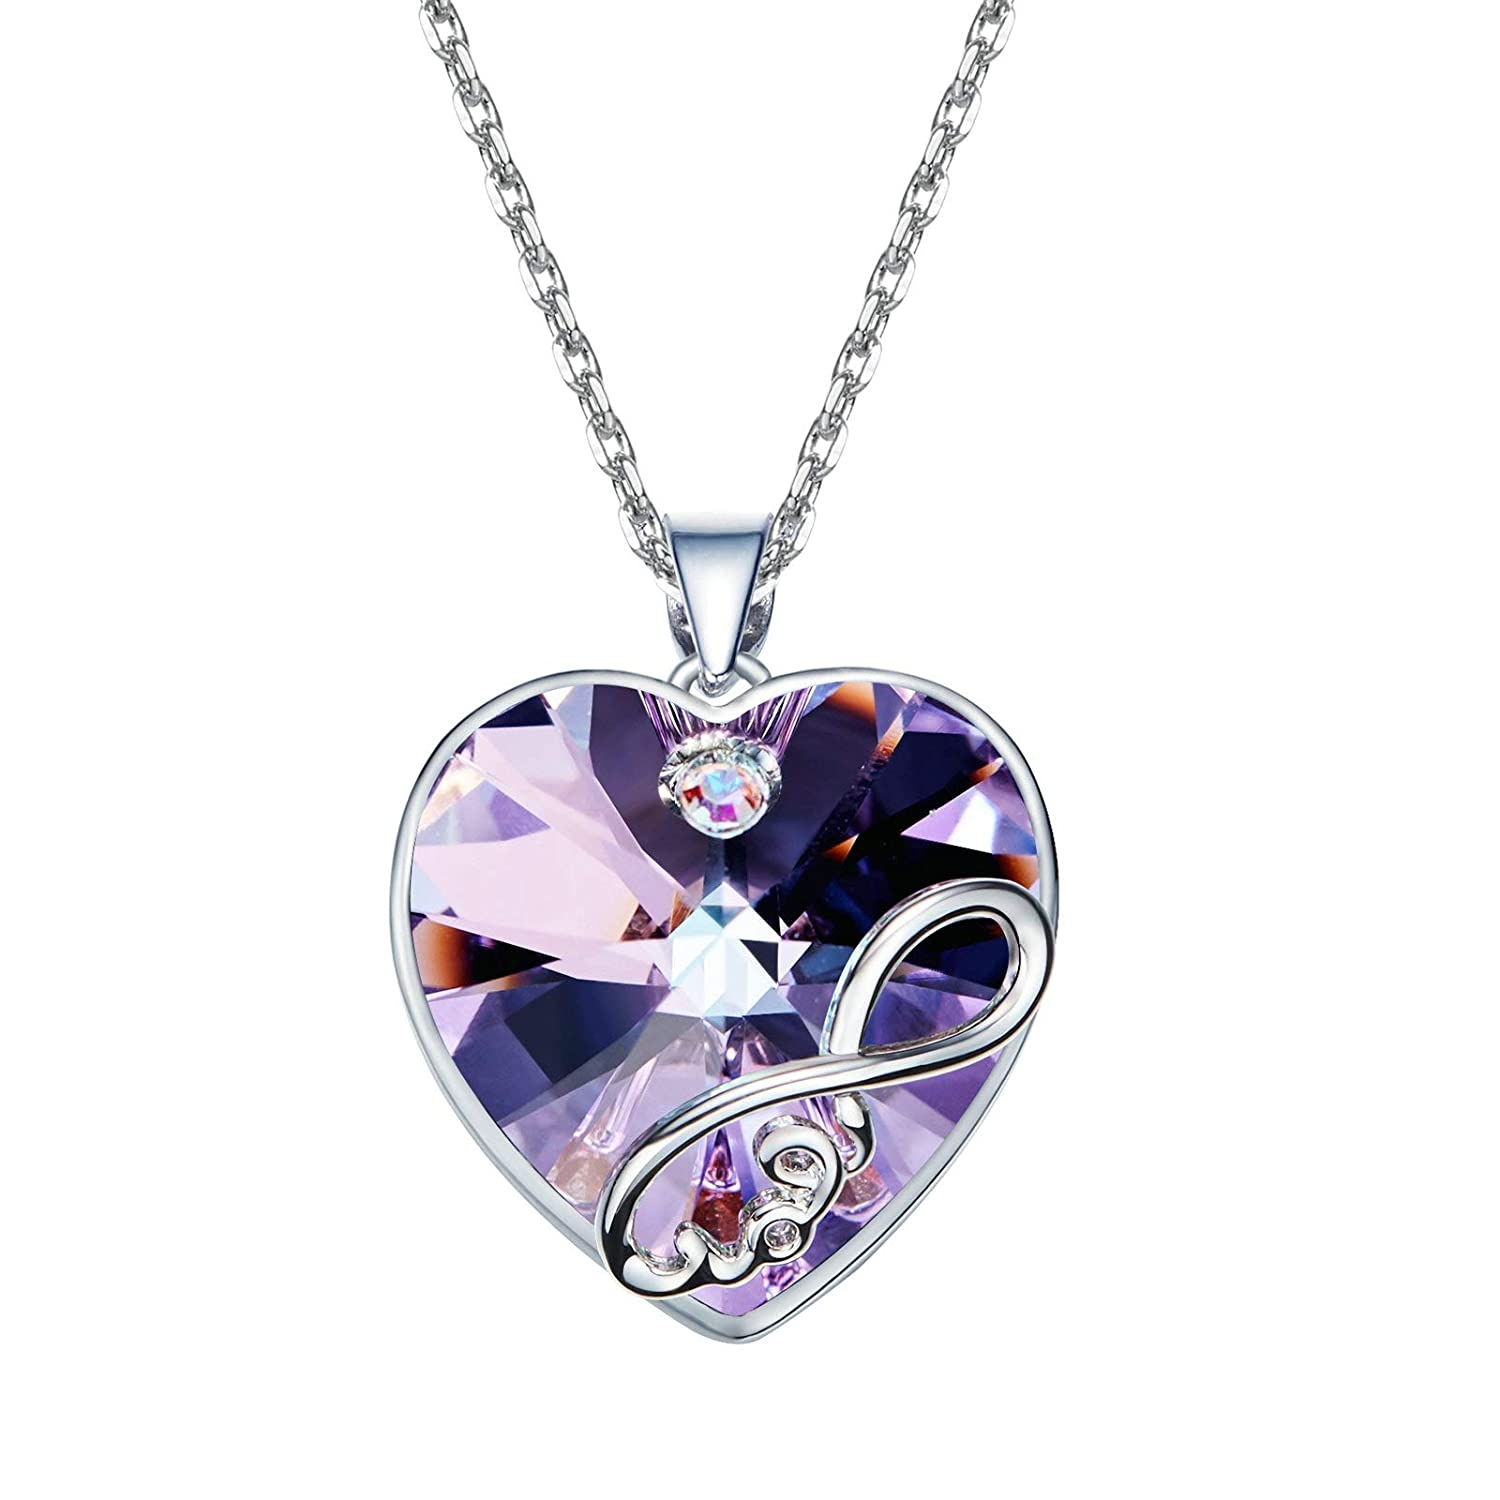 Aooaz Brass Necklace Womens Girls Heart Crystal with Eight Pendant Necklaces Anniversary